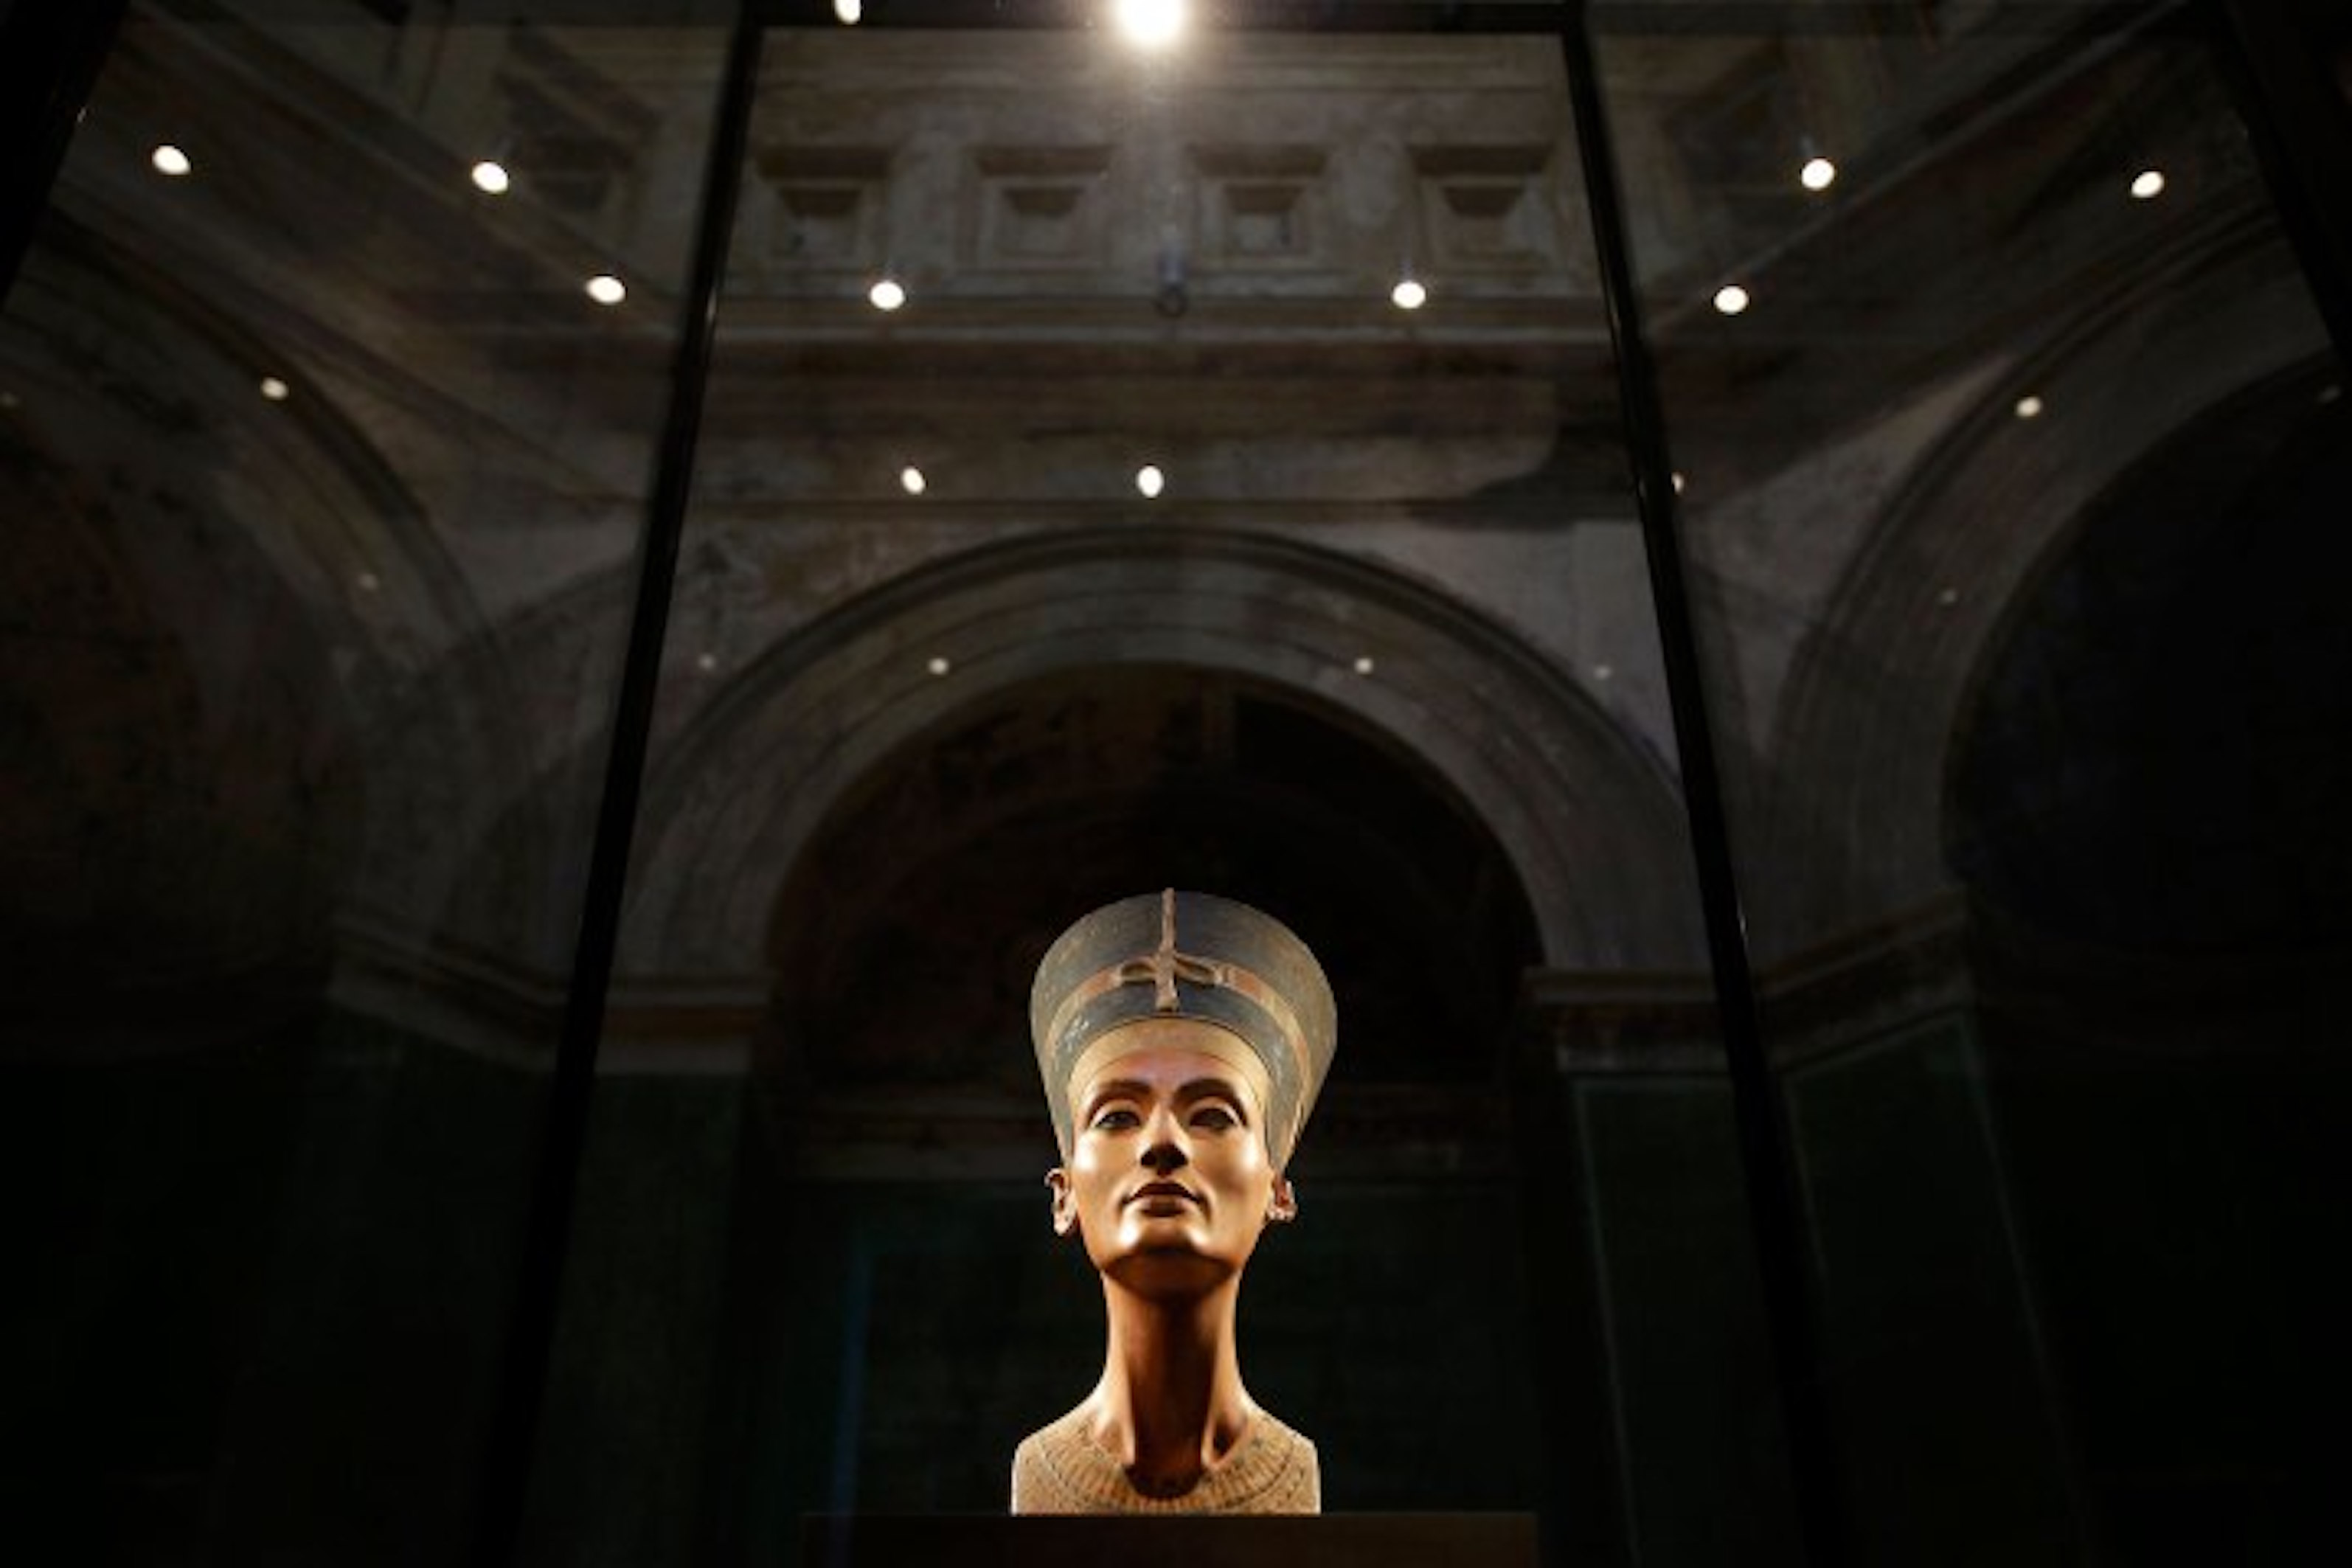 The Nefertiti bust is pictured during a press preview of the exhibition 'In The Light Of Amarna' at the Neues Museum in Berlin